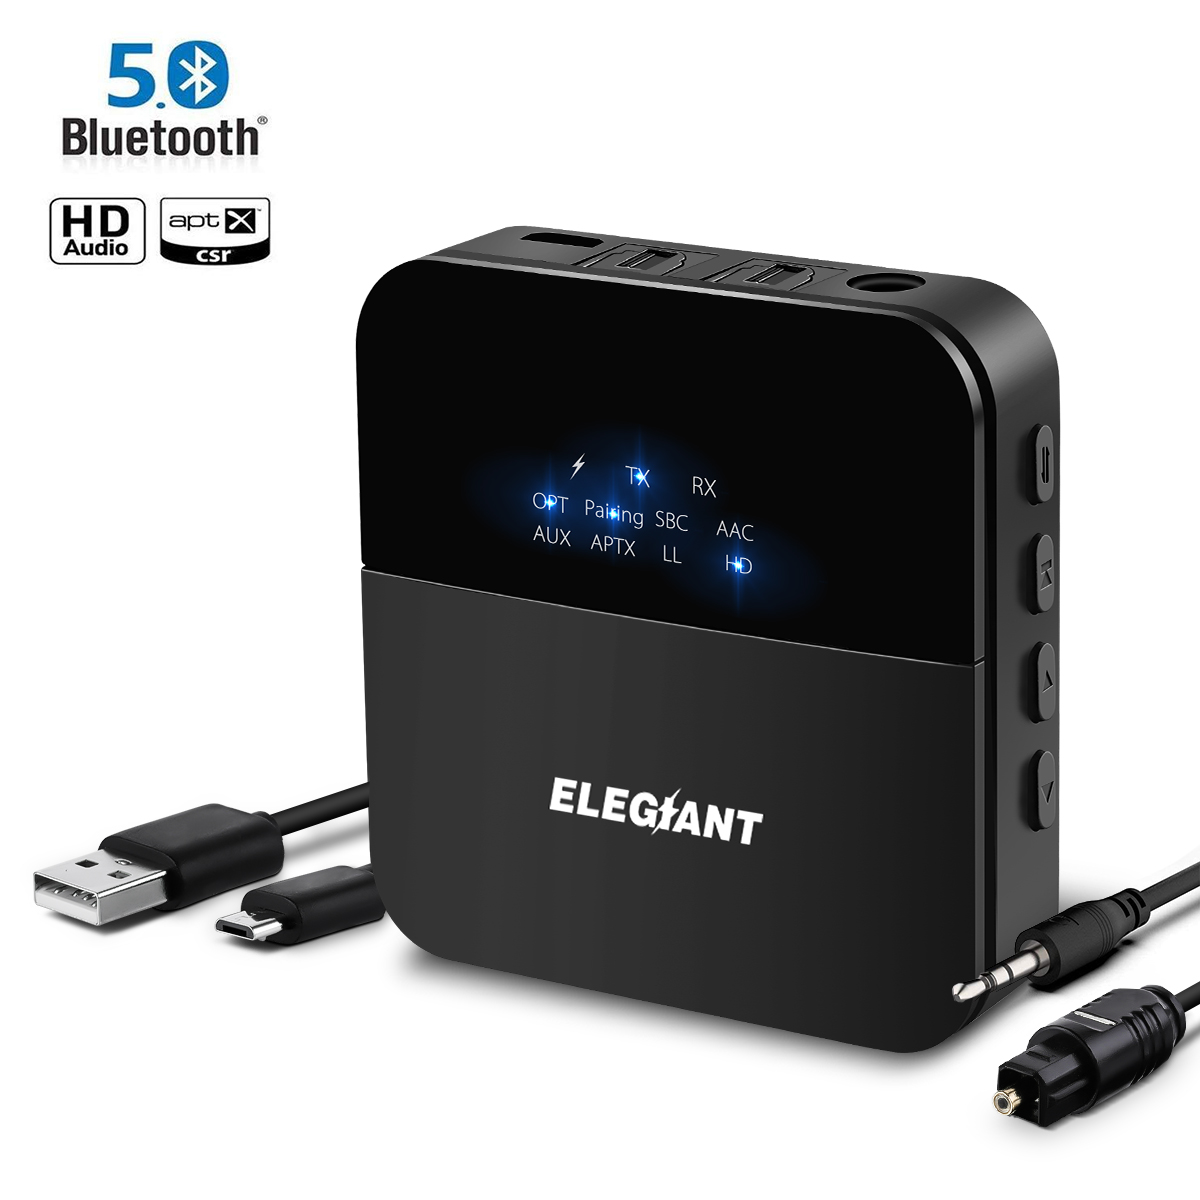 ELEGIANT bluetooth 5.0 Audio Transmitter Receiver AptX HD AptX LL Adapter Optical Toslink RCA Plug/3.5mm AUX for Car Headphones